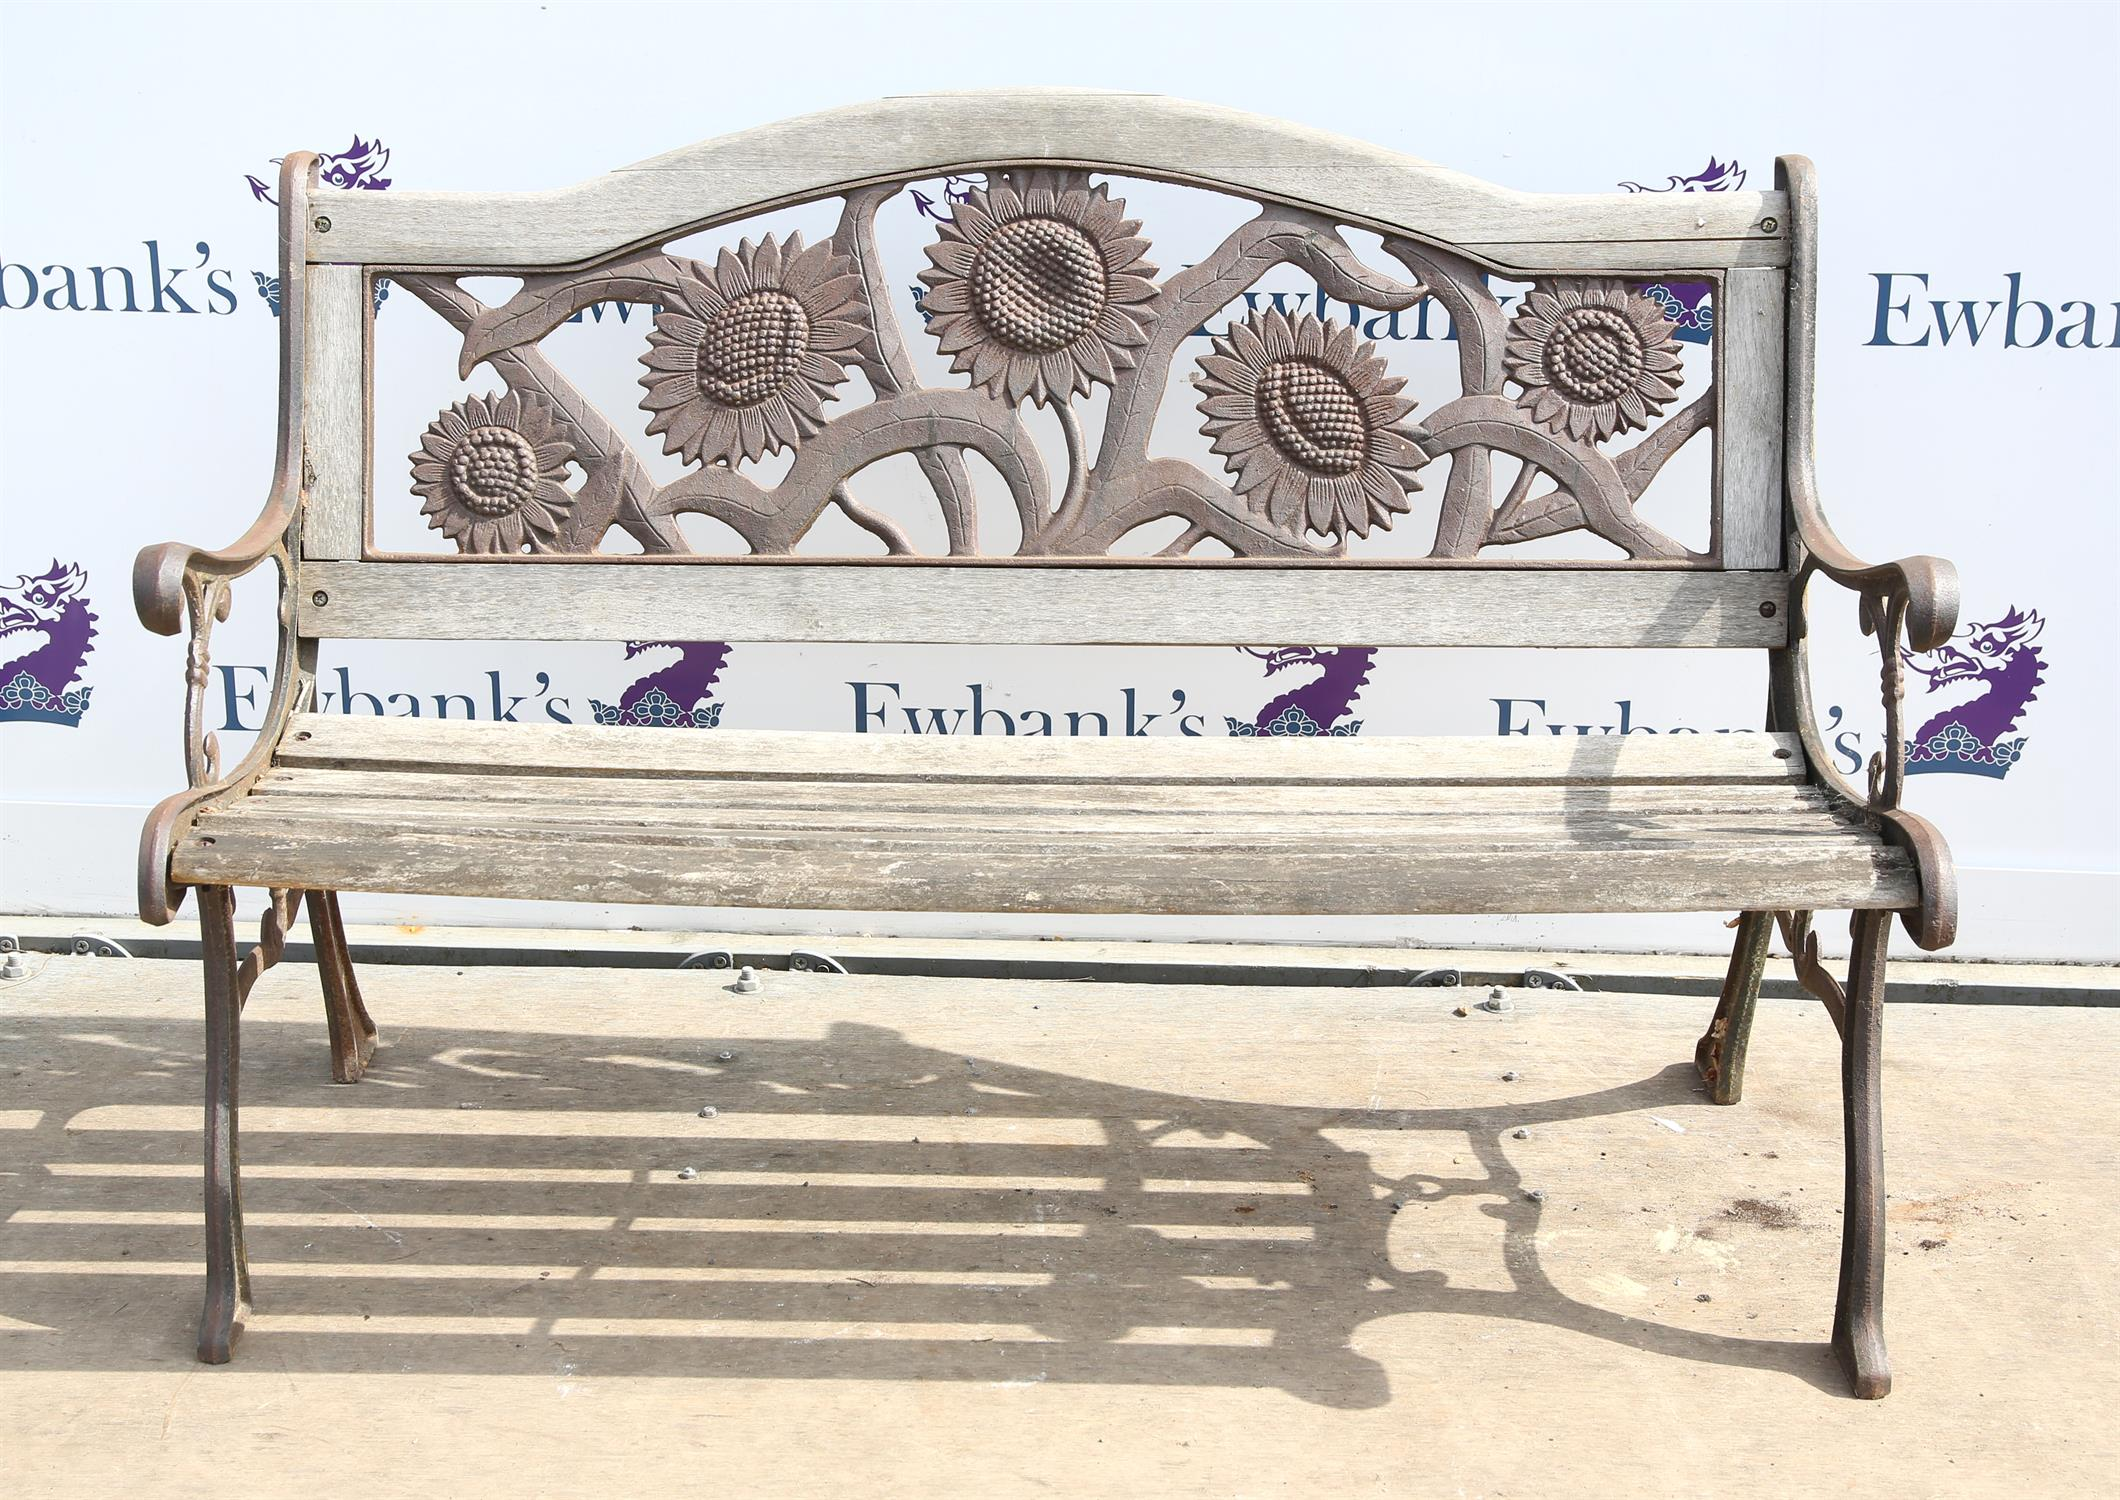 19th century wrought iron and weathered teak garden bench, with pierced wrought iron backrest with